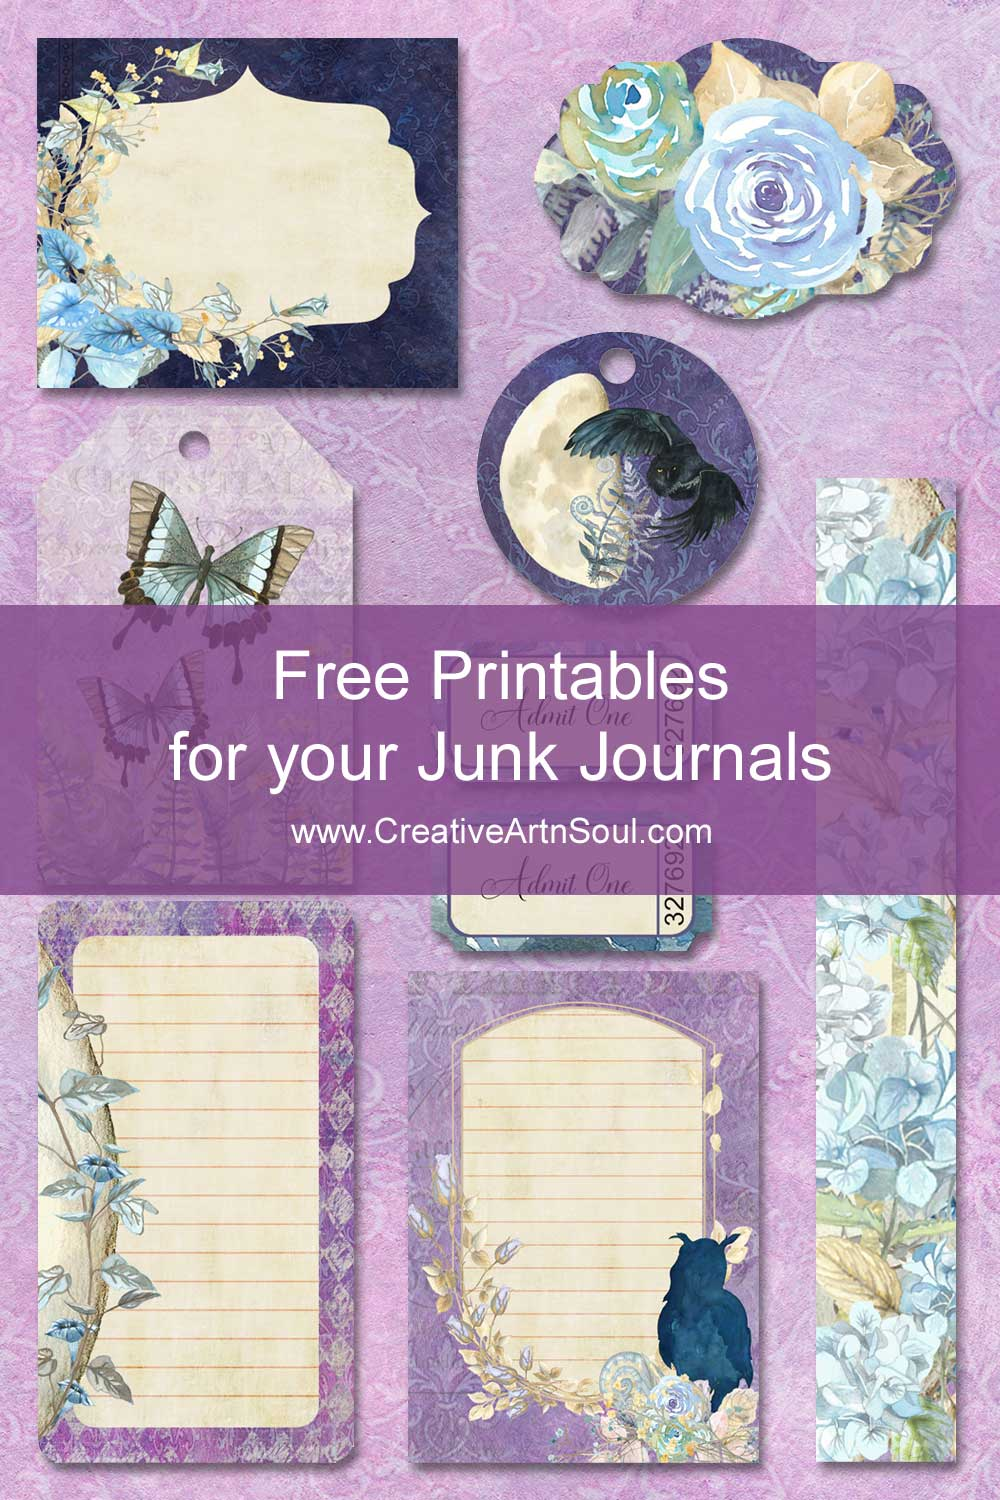 Free Printables for Your Junk Journals